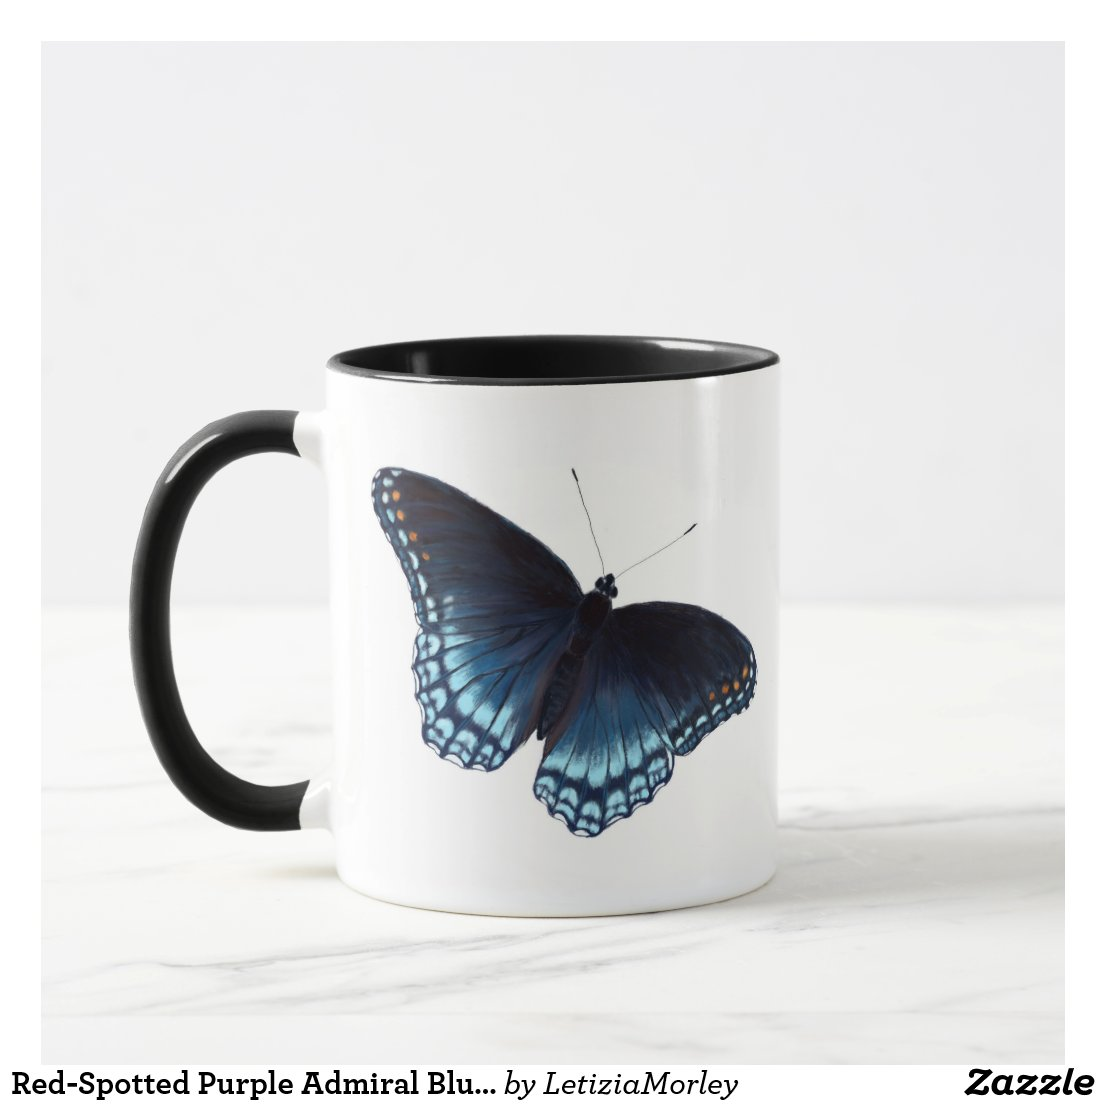 Red-Spotted Purple Admiral Butterfly Mug